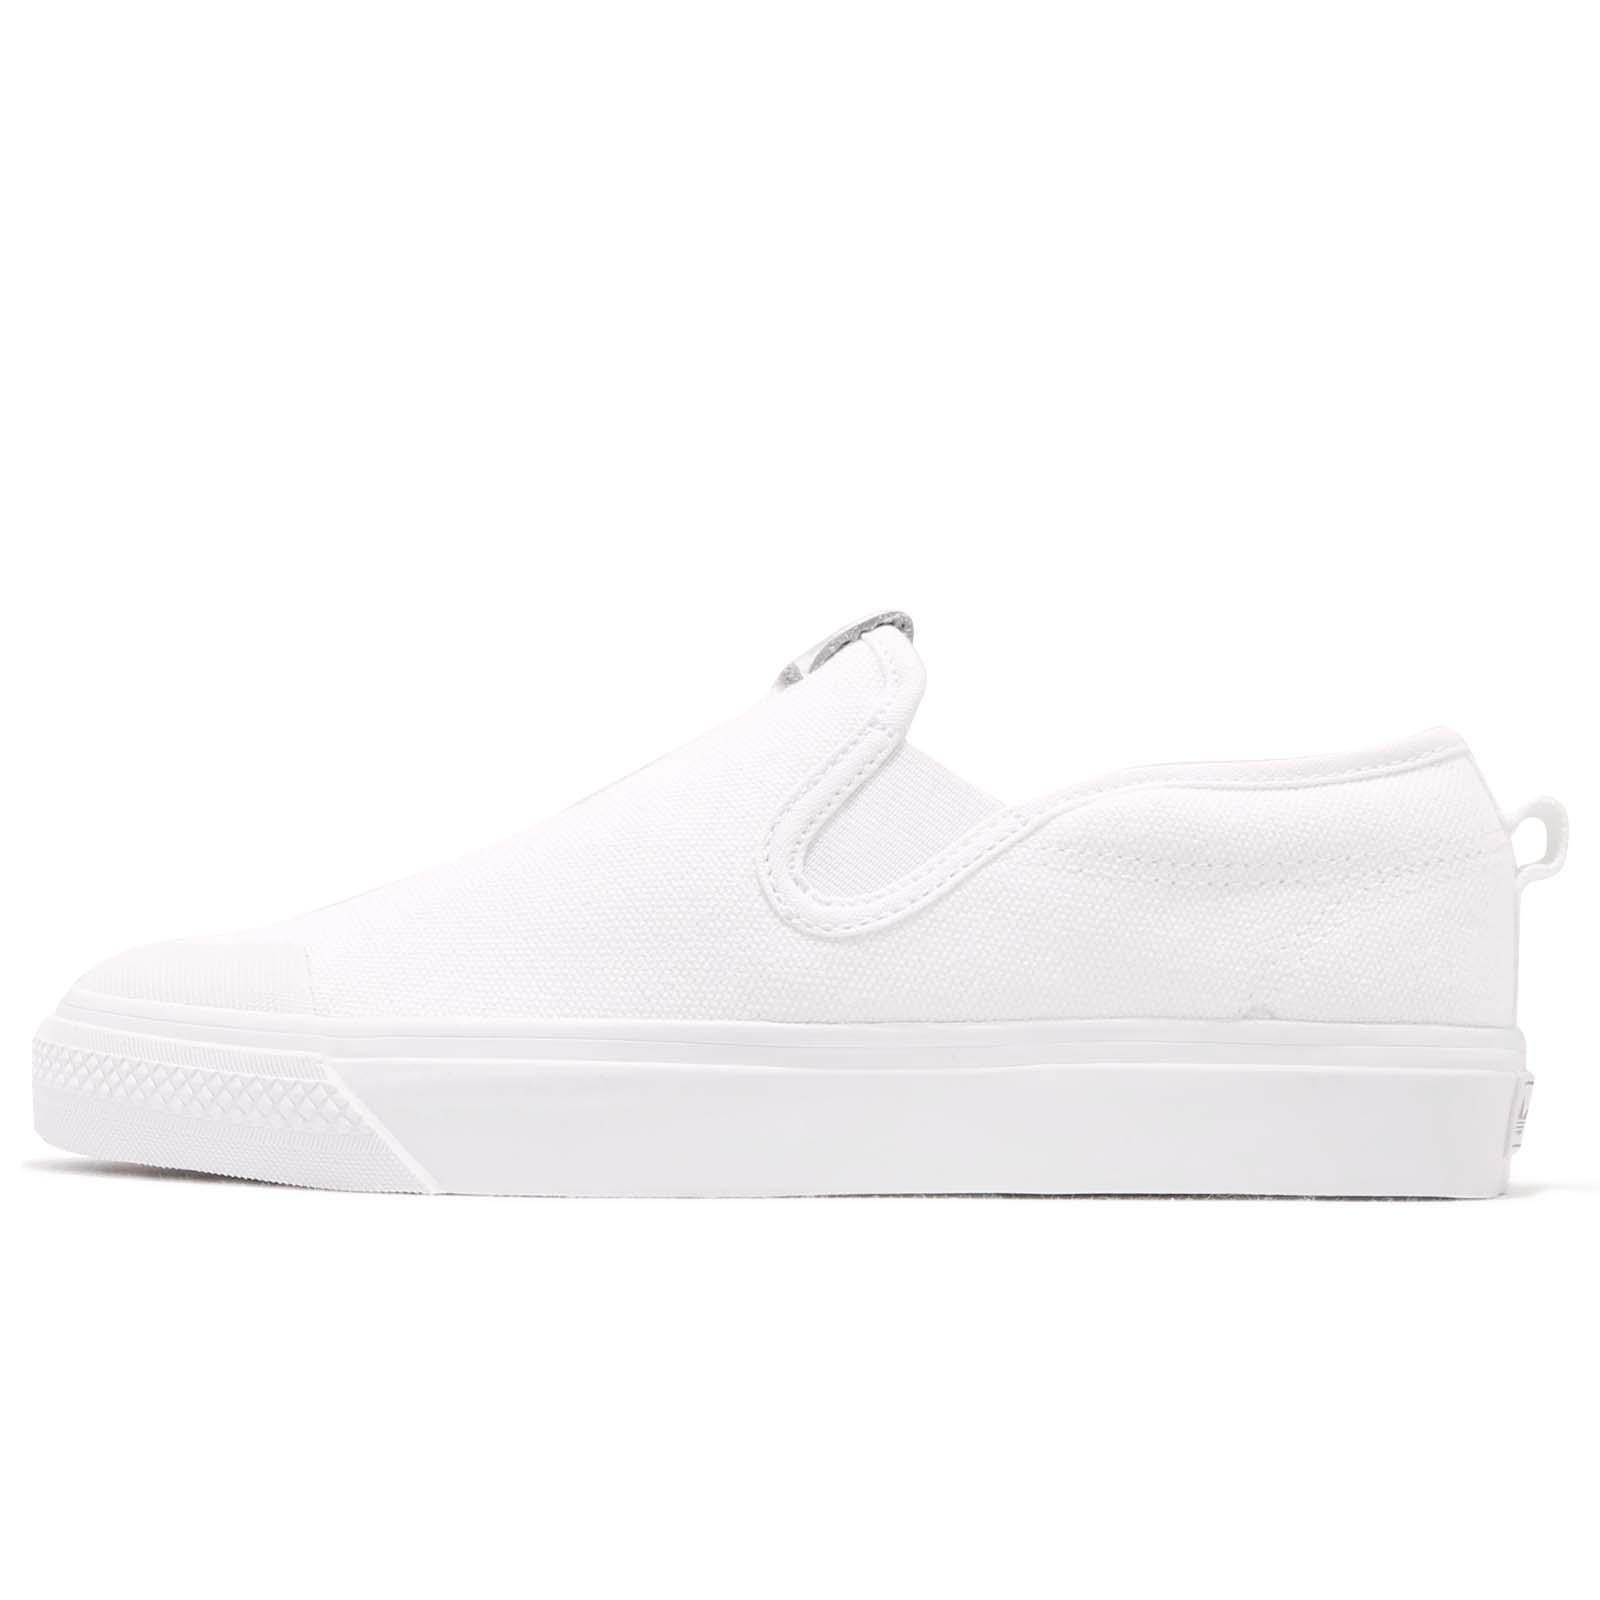 adidas Originals Nizza Slipon W White Women Slip On Casual Shoes Sneakers  CQ3103 2df8521c8768e